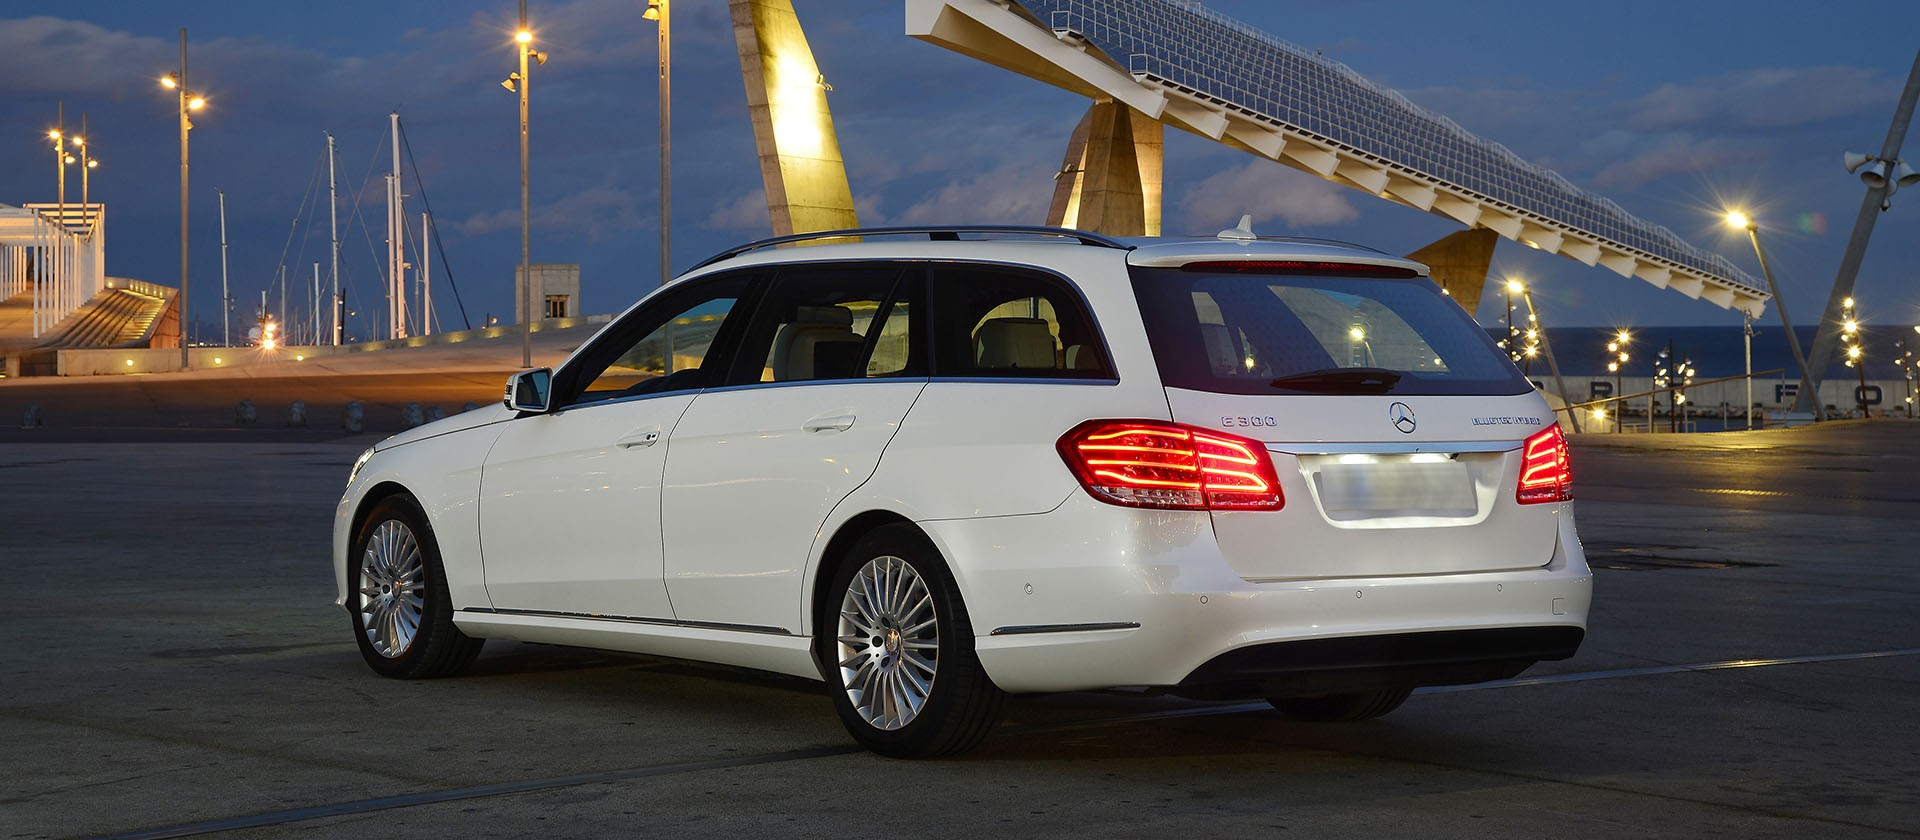 Airport Executive Cars Manchester